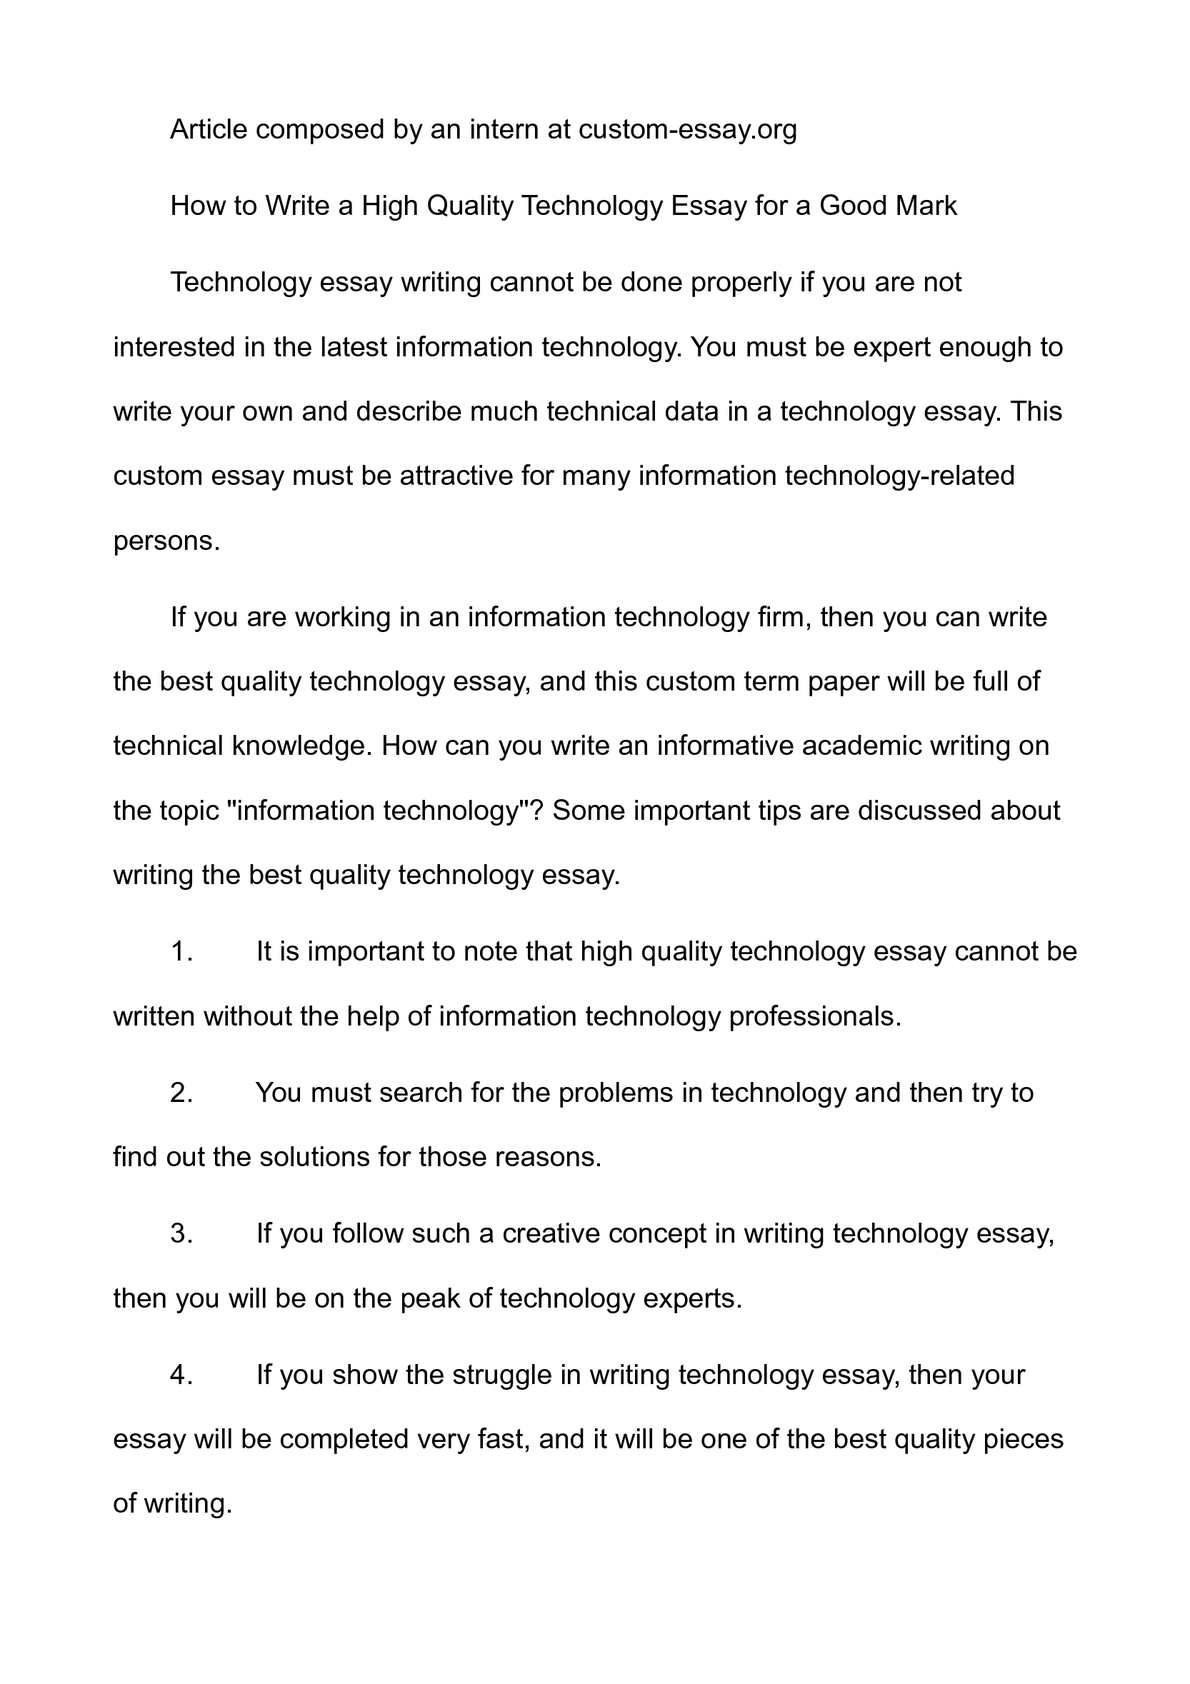 Best Business School Essays  Science And Technology Essay also Business Essay Sample Calamo  How To Write A High Quality Technology Essay For A Good Mark Topic English Essay